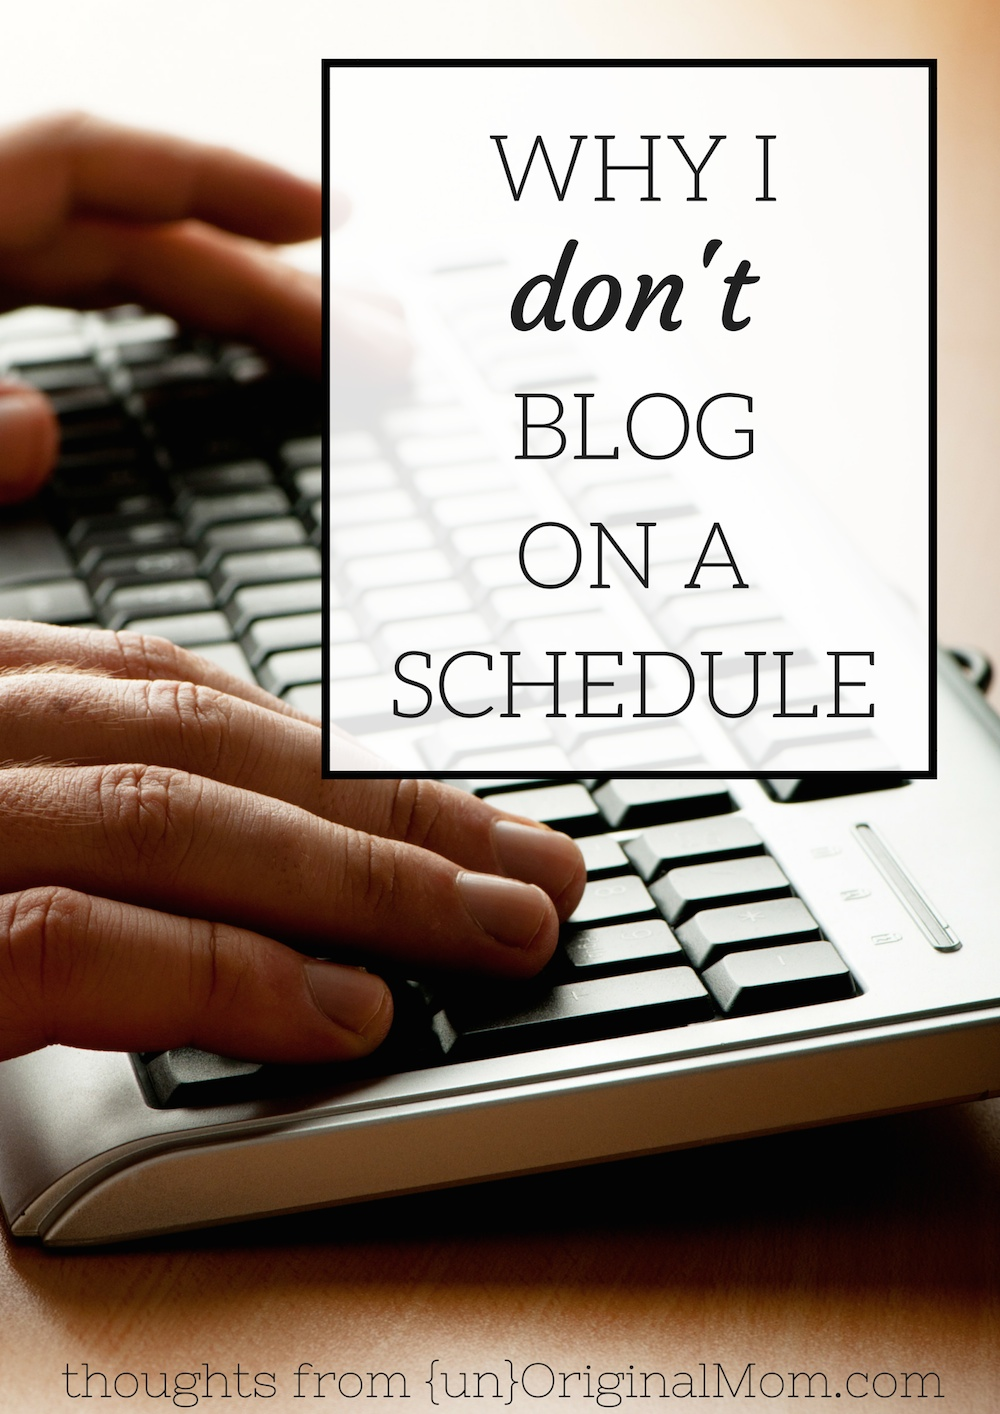 Great thoughts on the benefits of throwing away your posting schedule